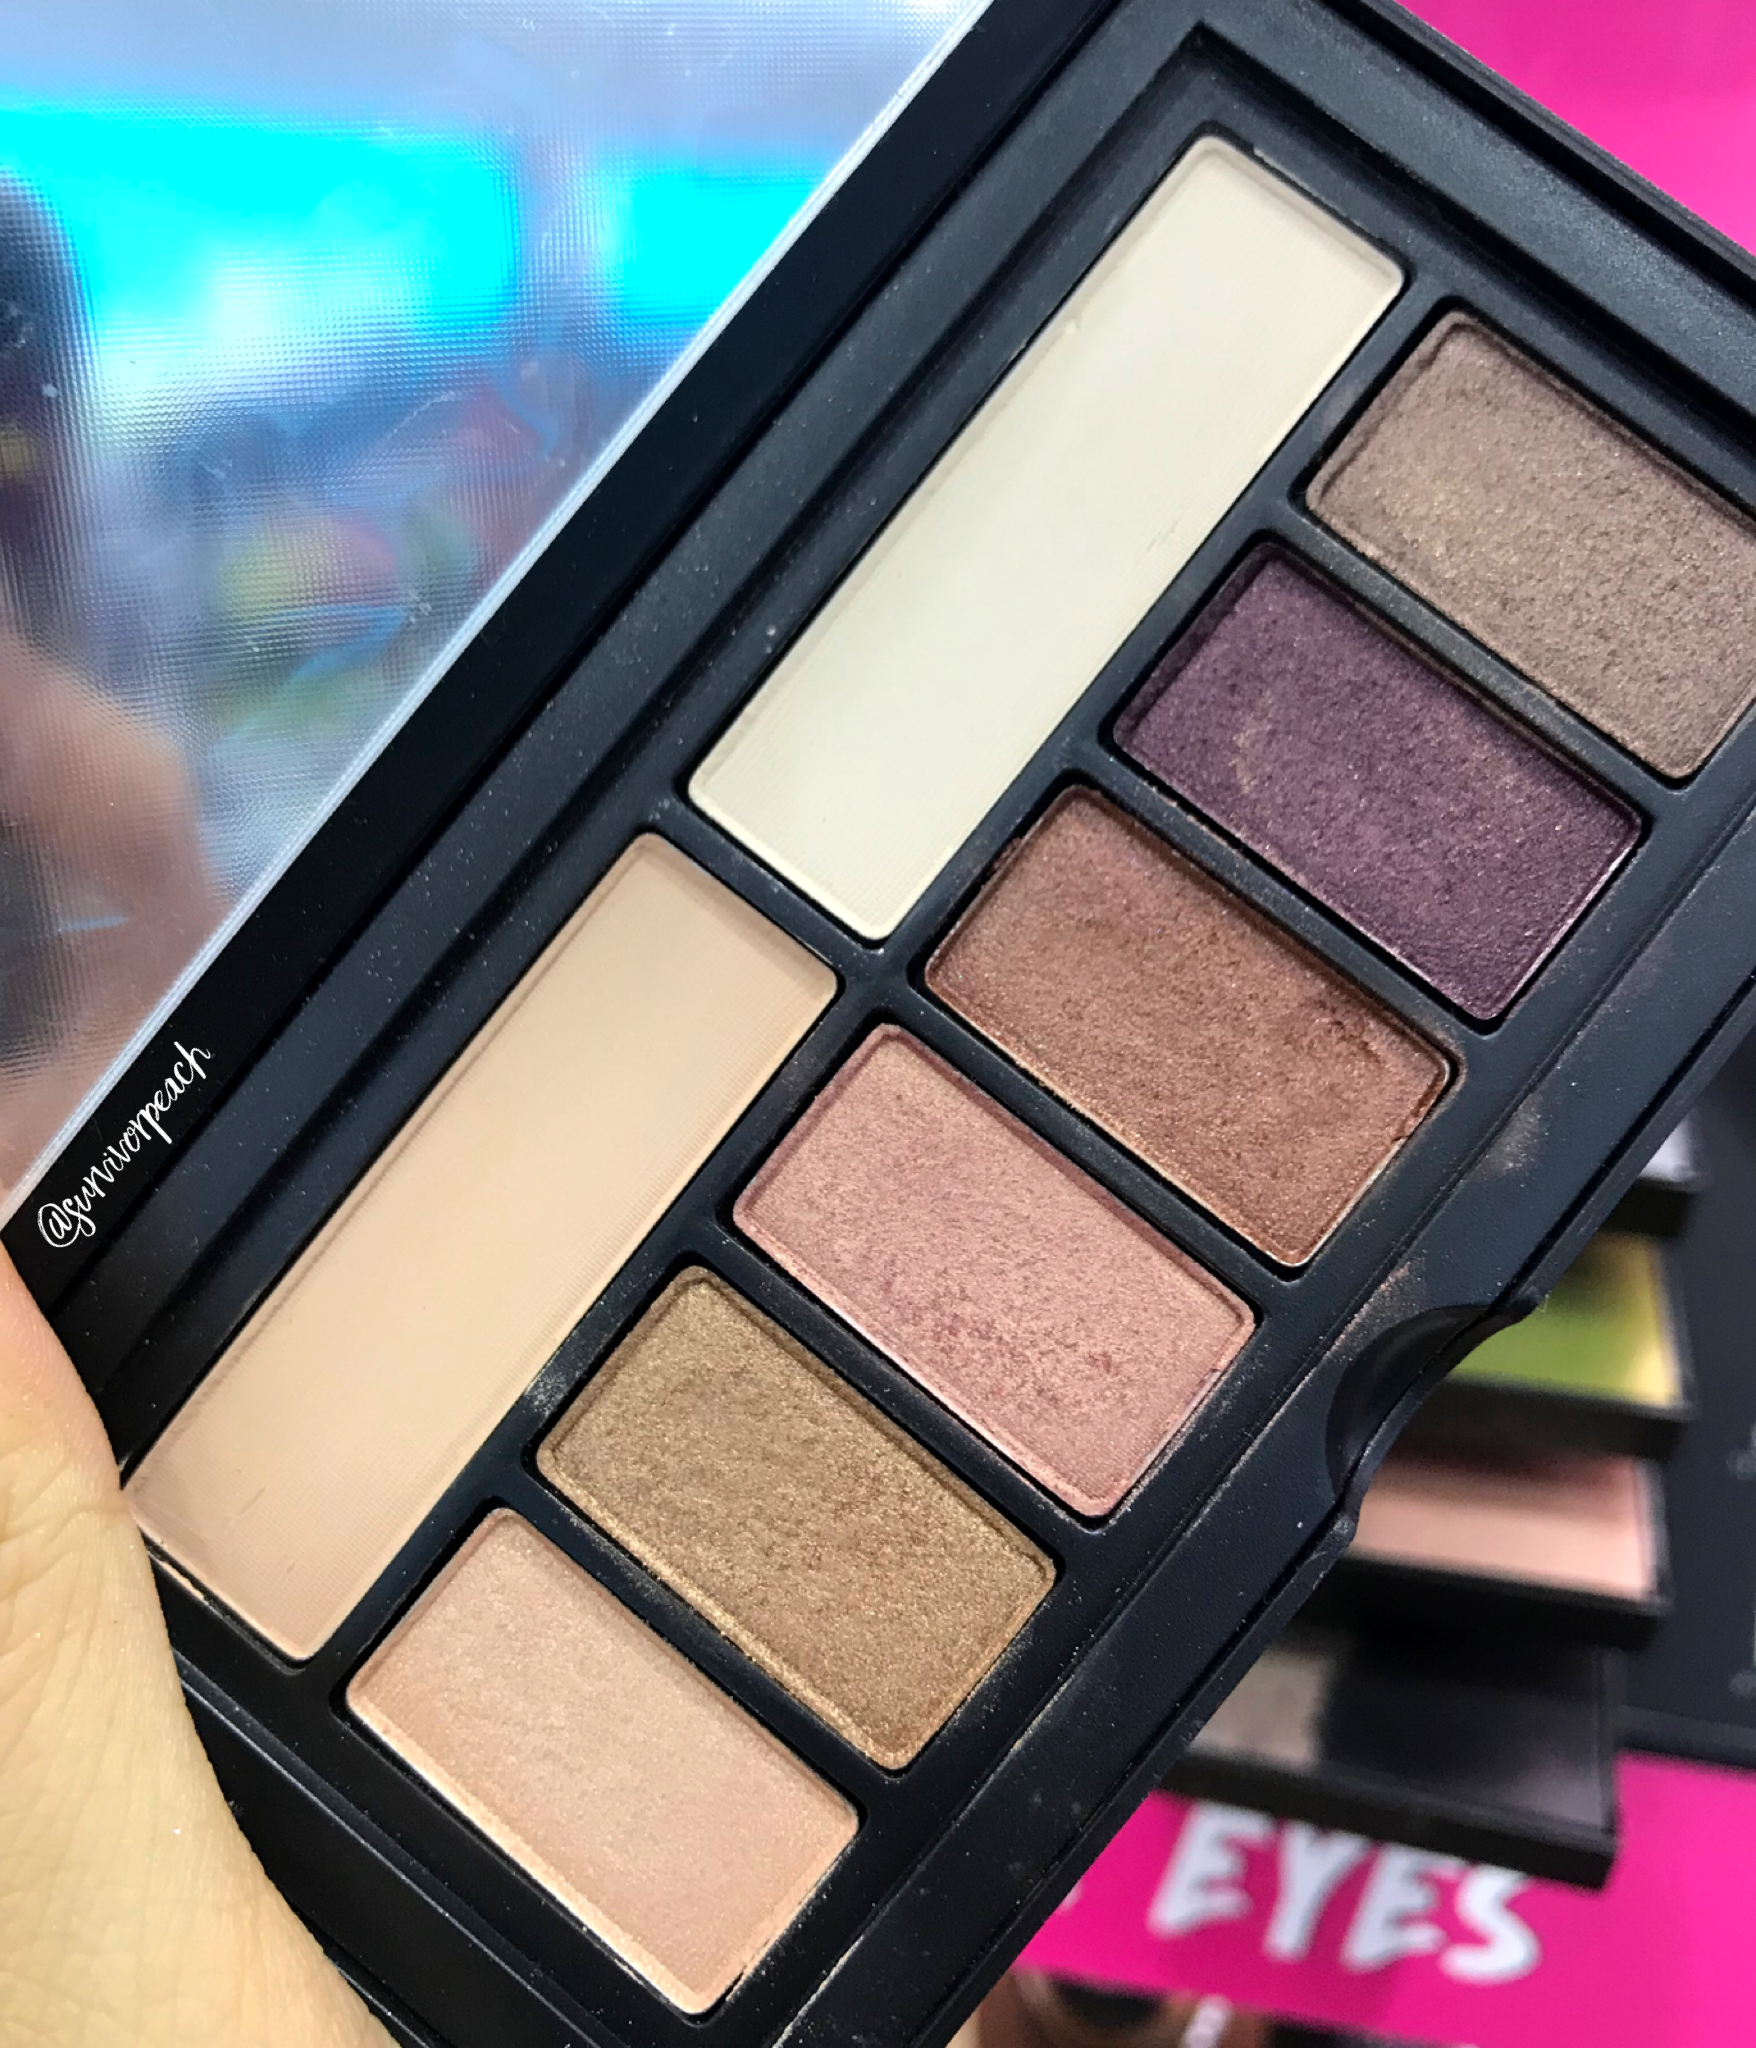 Smashbox Covershot palette: Golden Hour